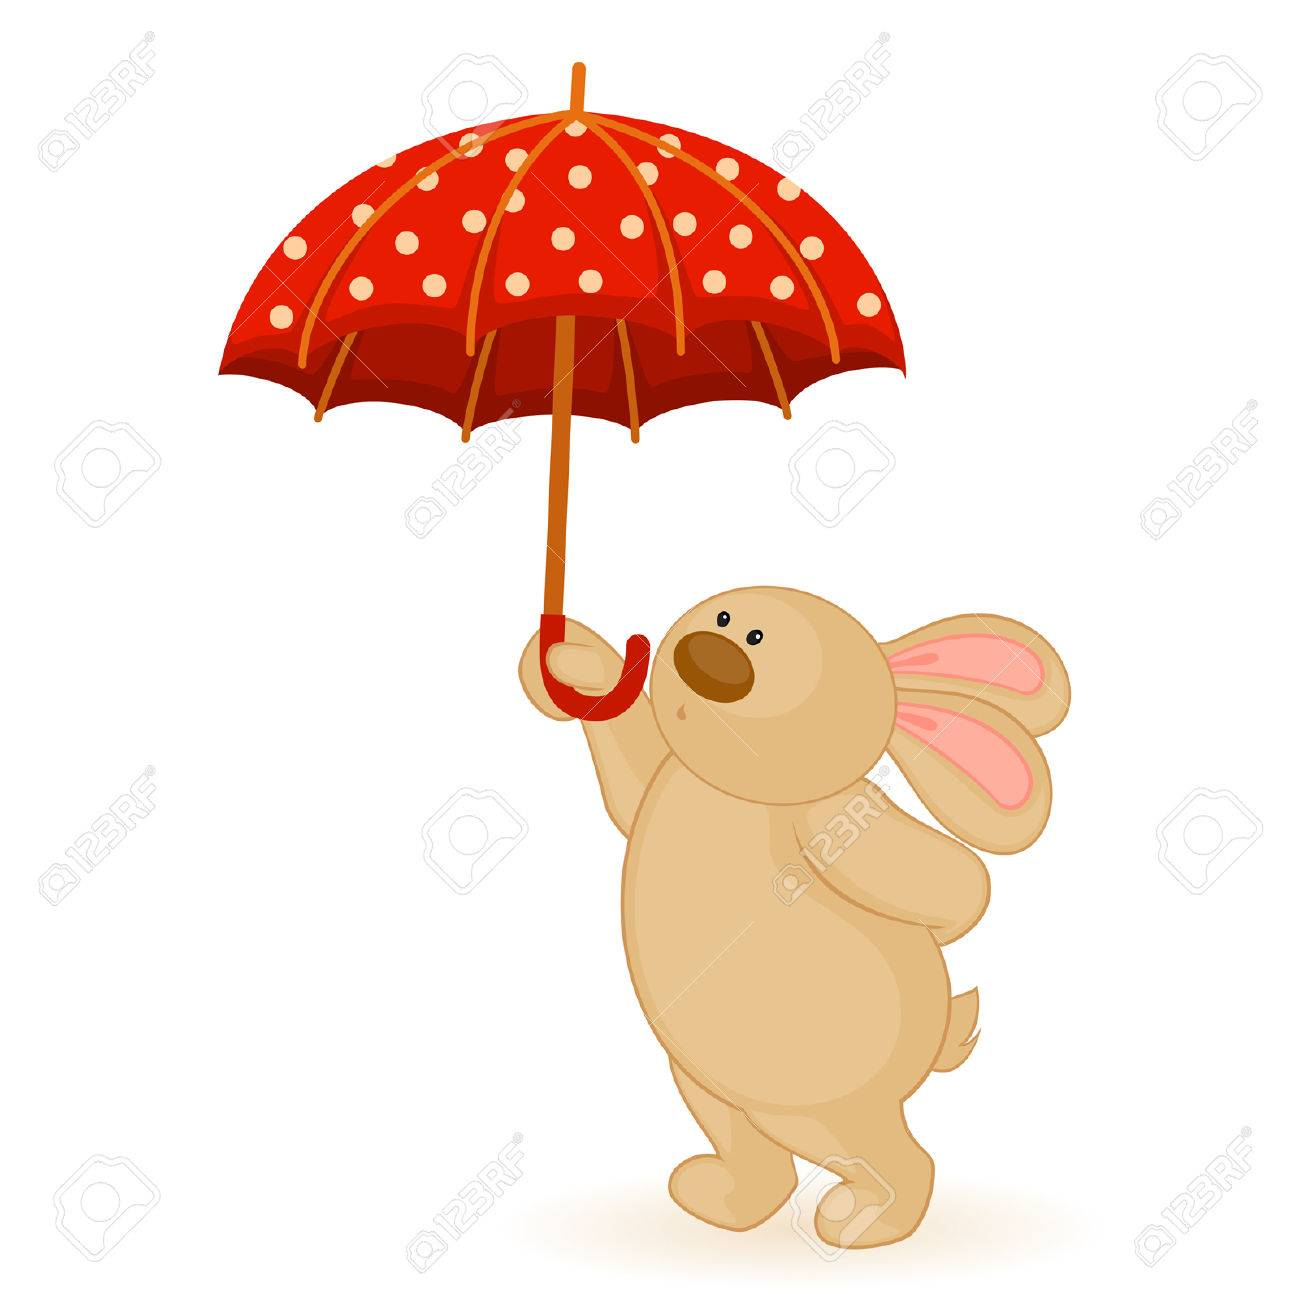 cartoon little toy bunny with umbrella Stock Vector - 8518913